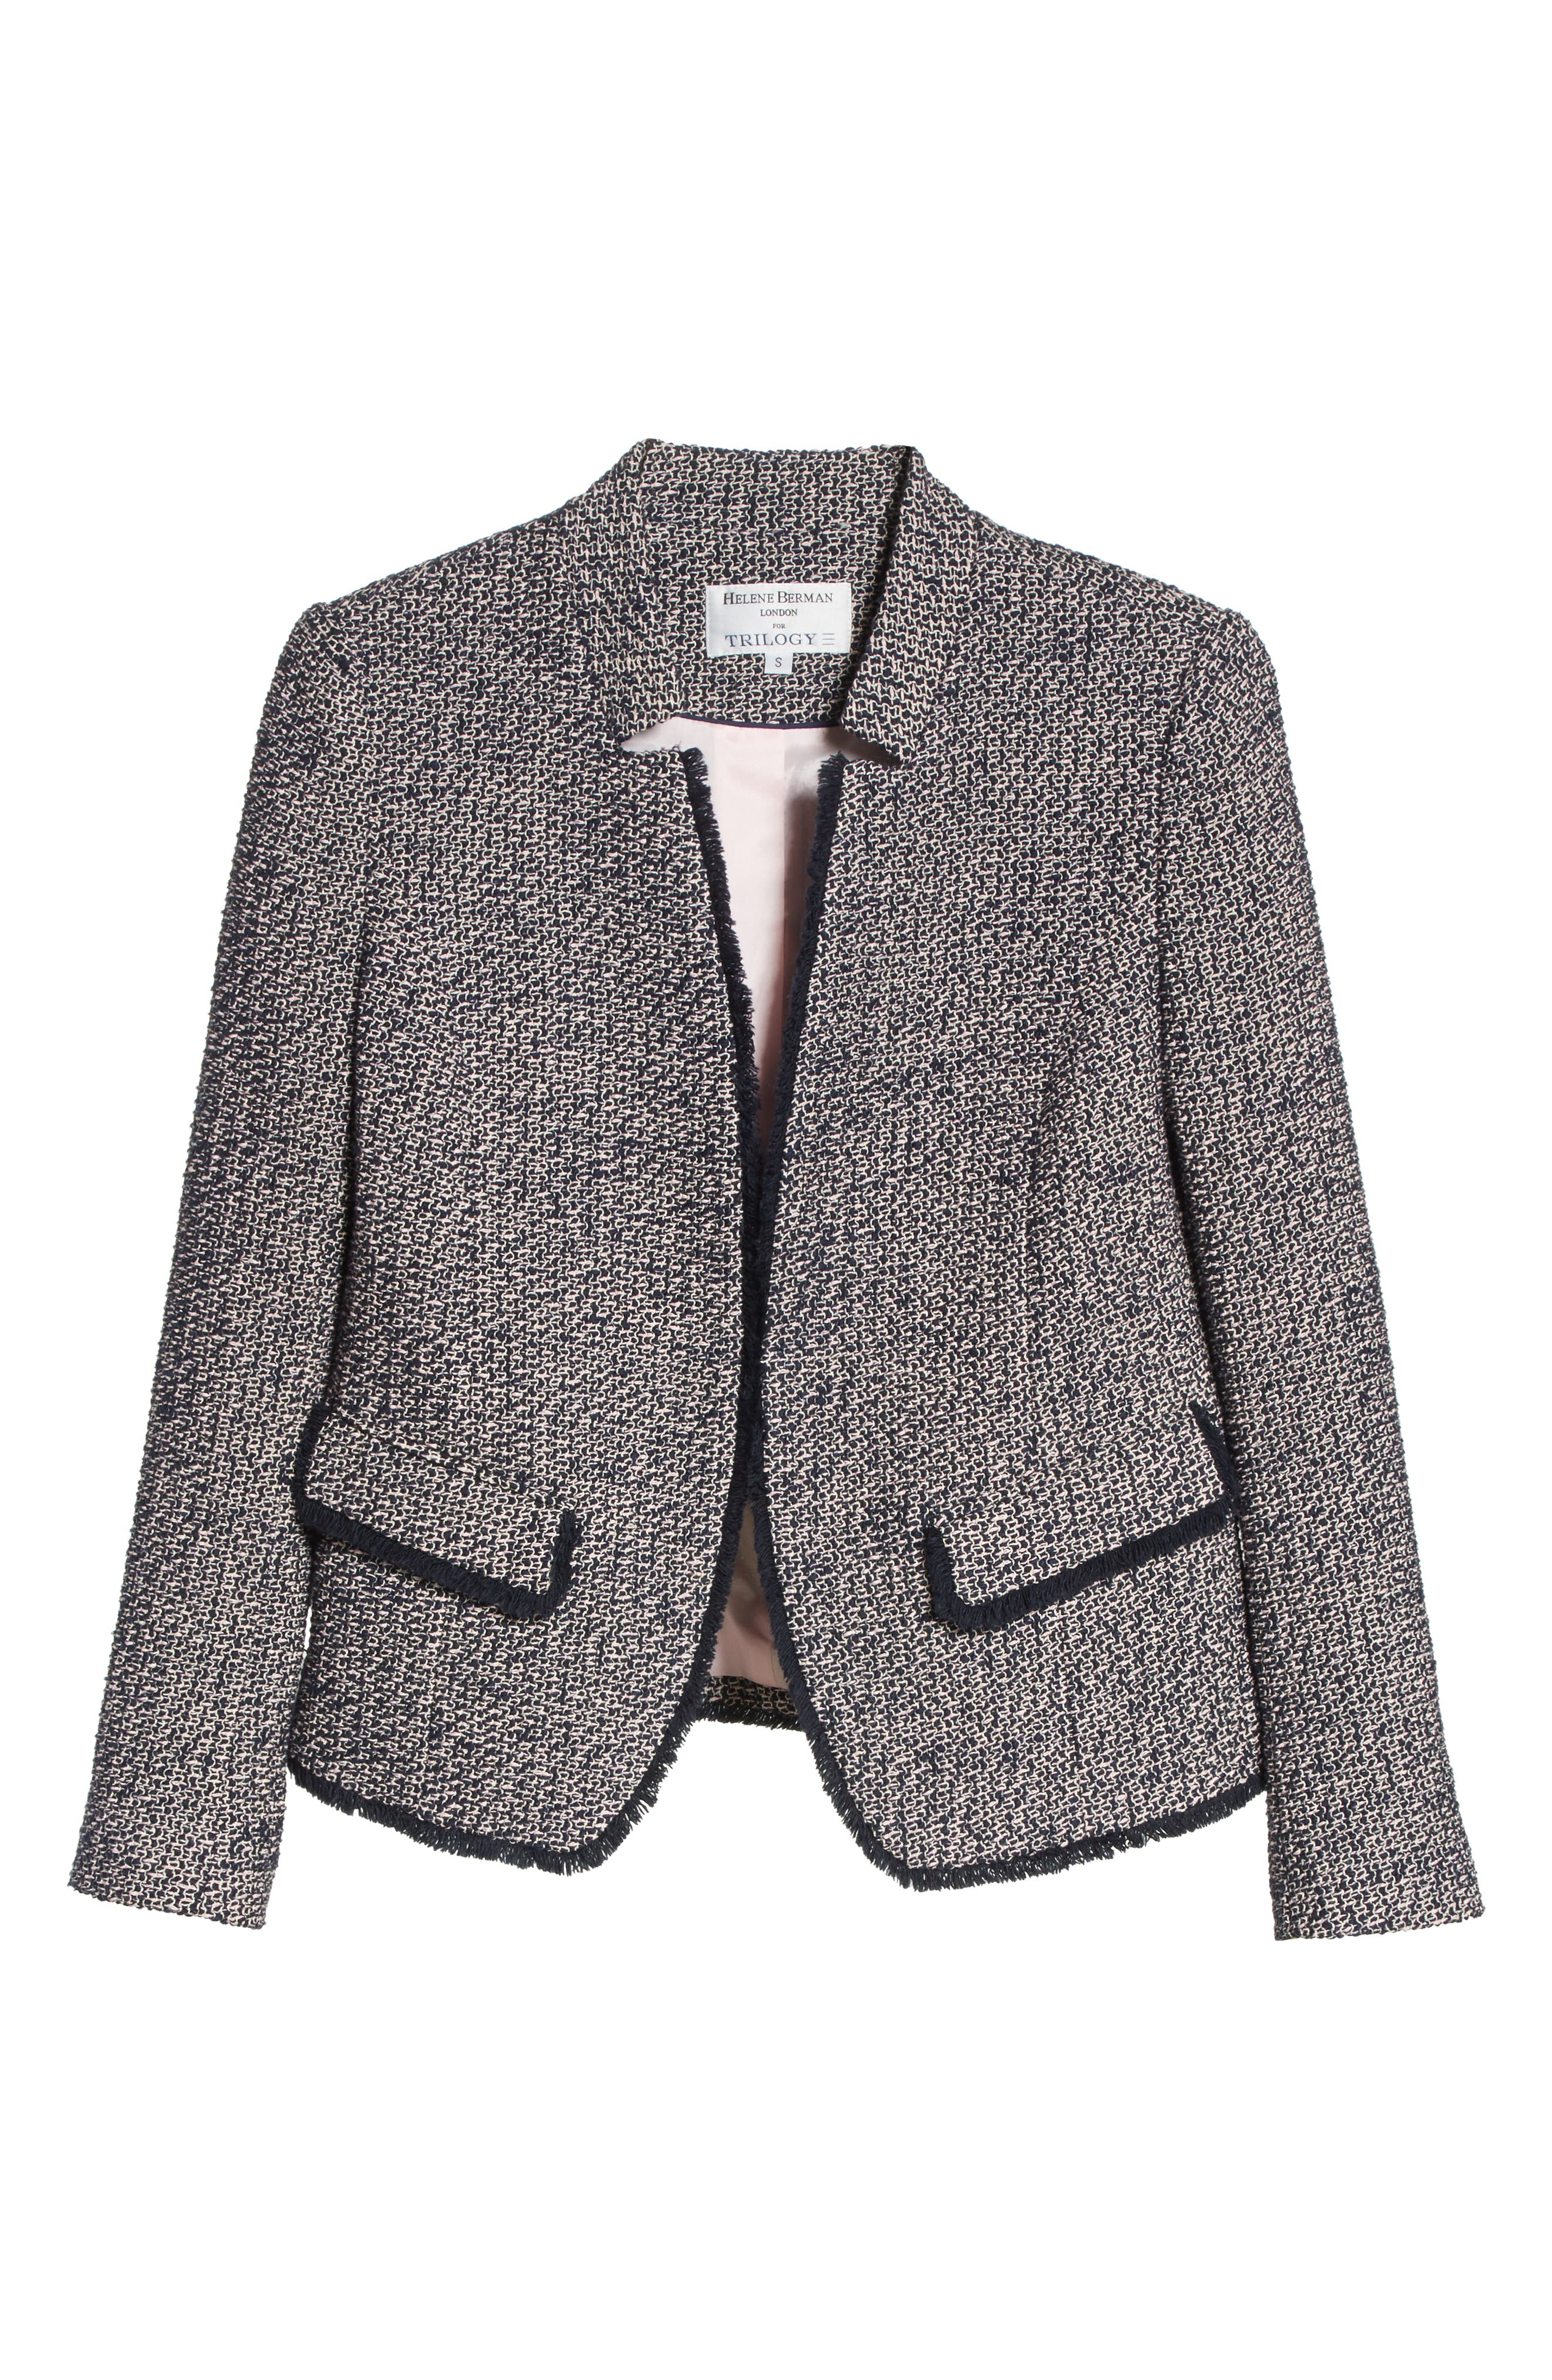 Notch Collar Tweed Jacket,                             Alternate thumbnail 5, color,